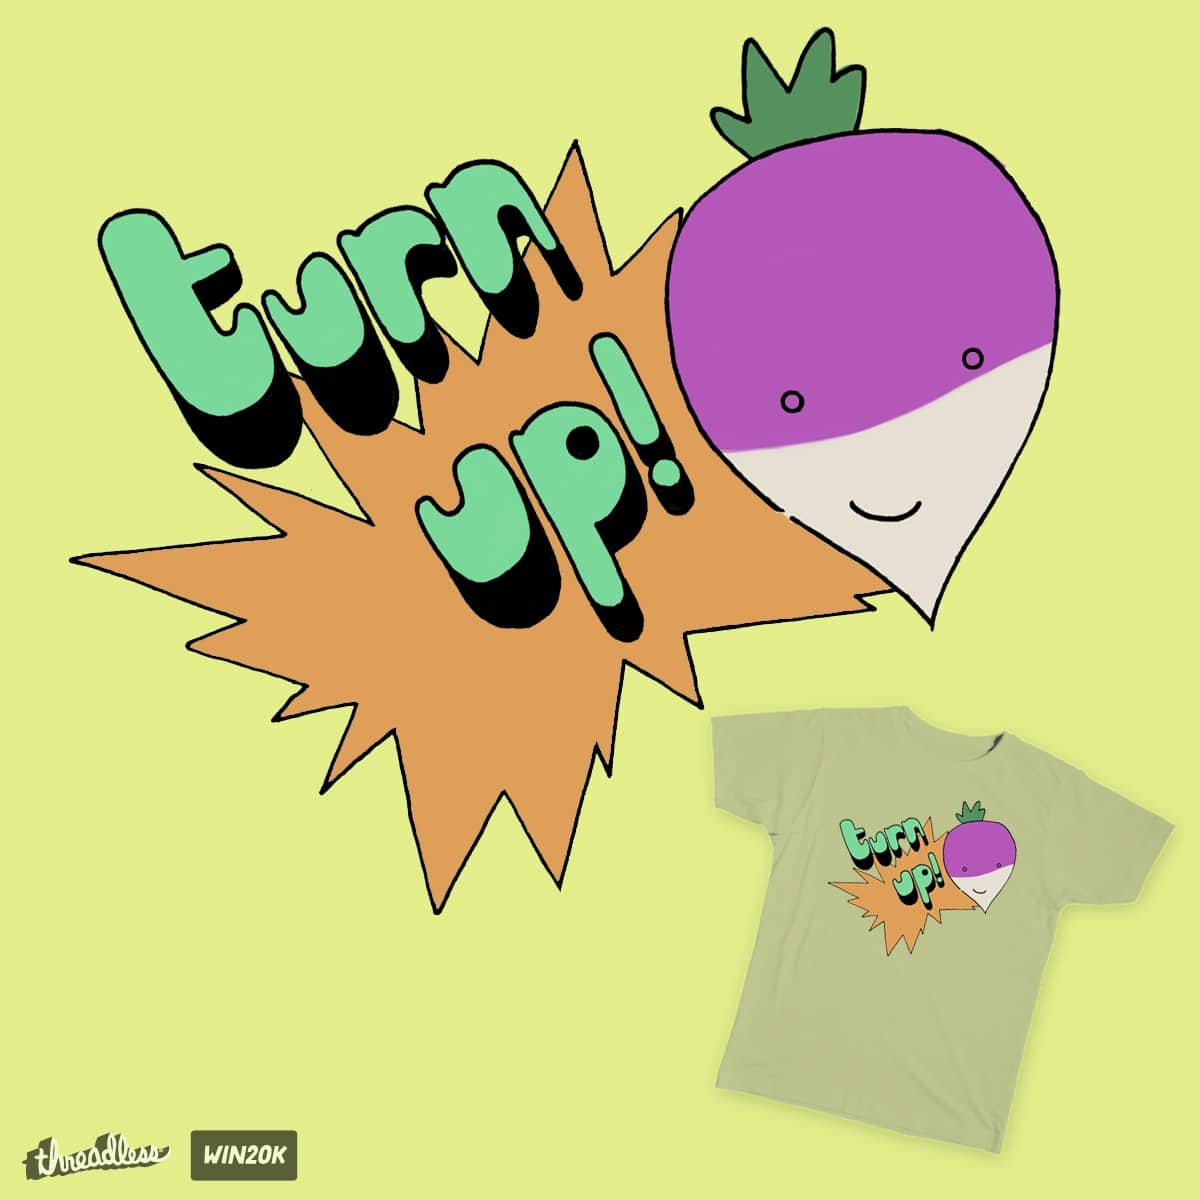 Turn Up! by justin23000 on Threadless